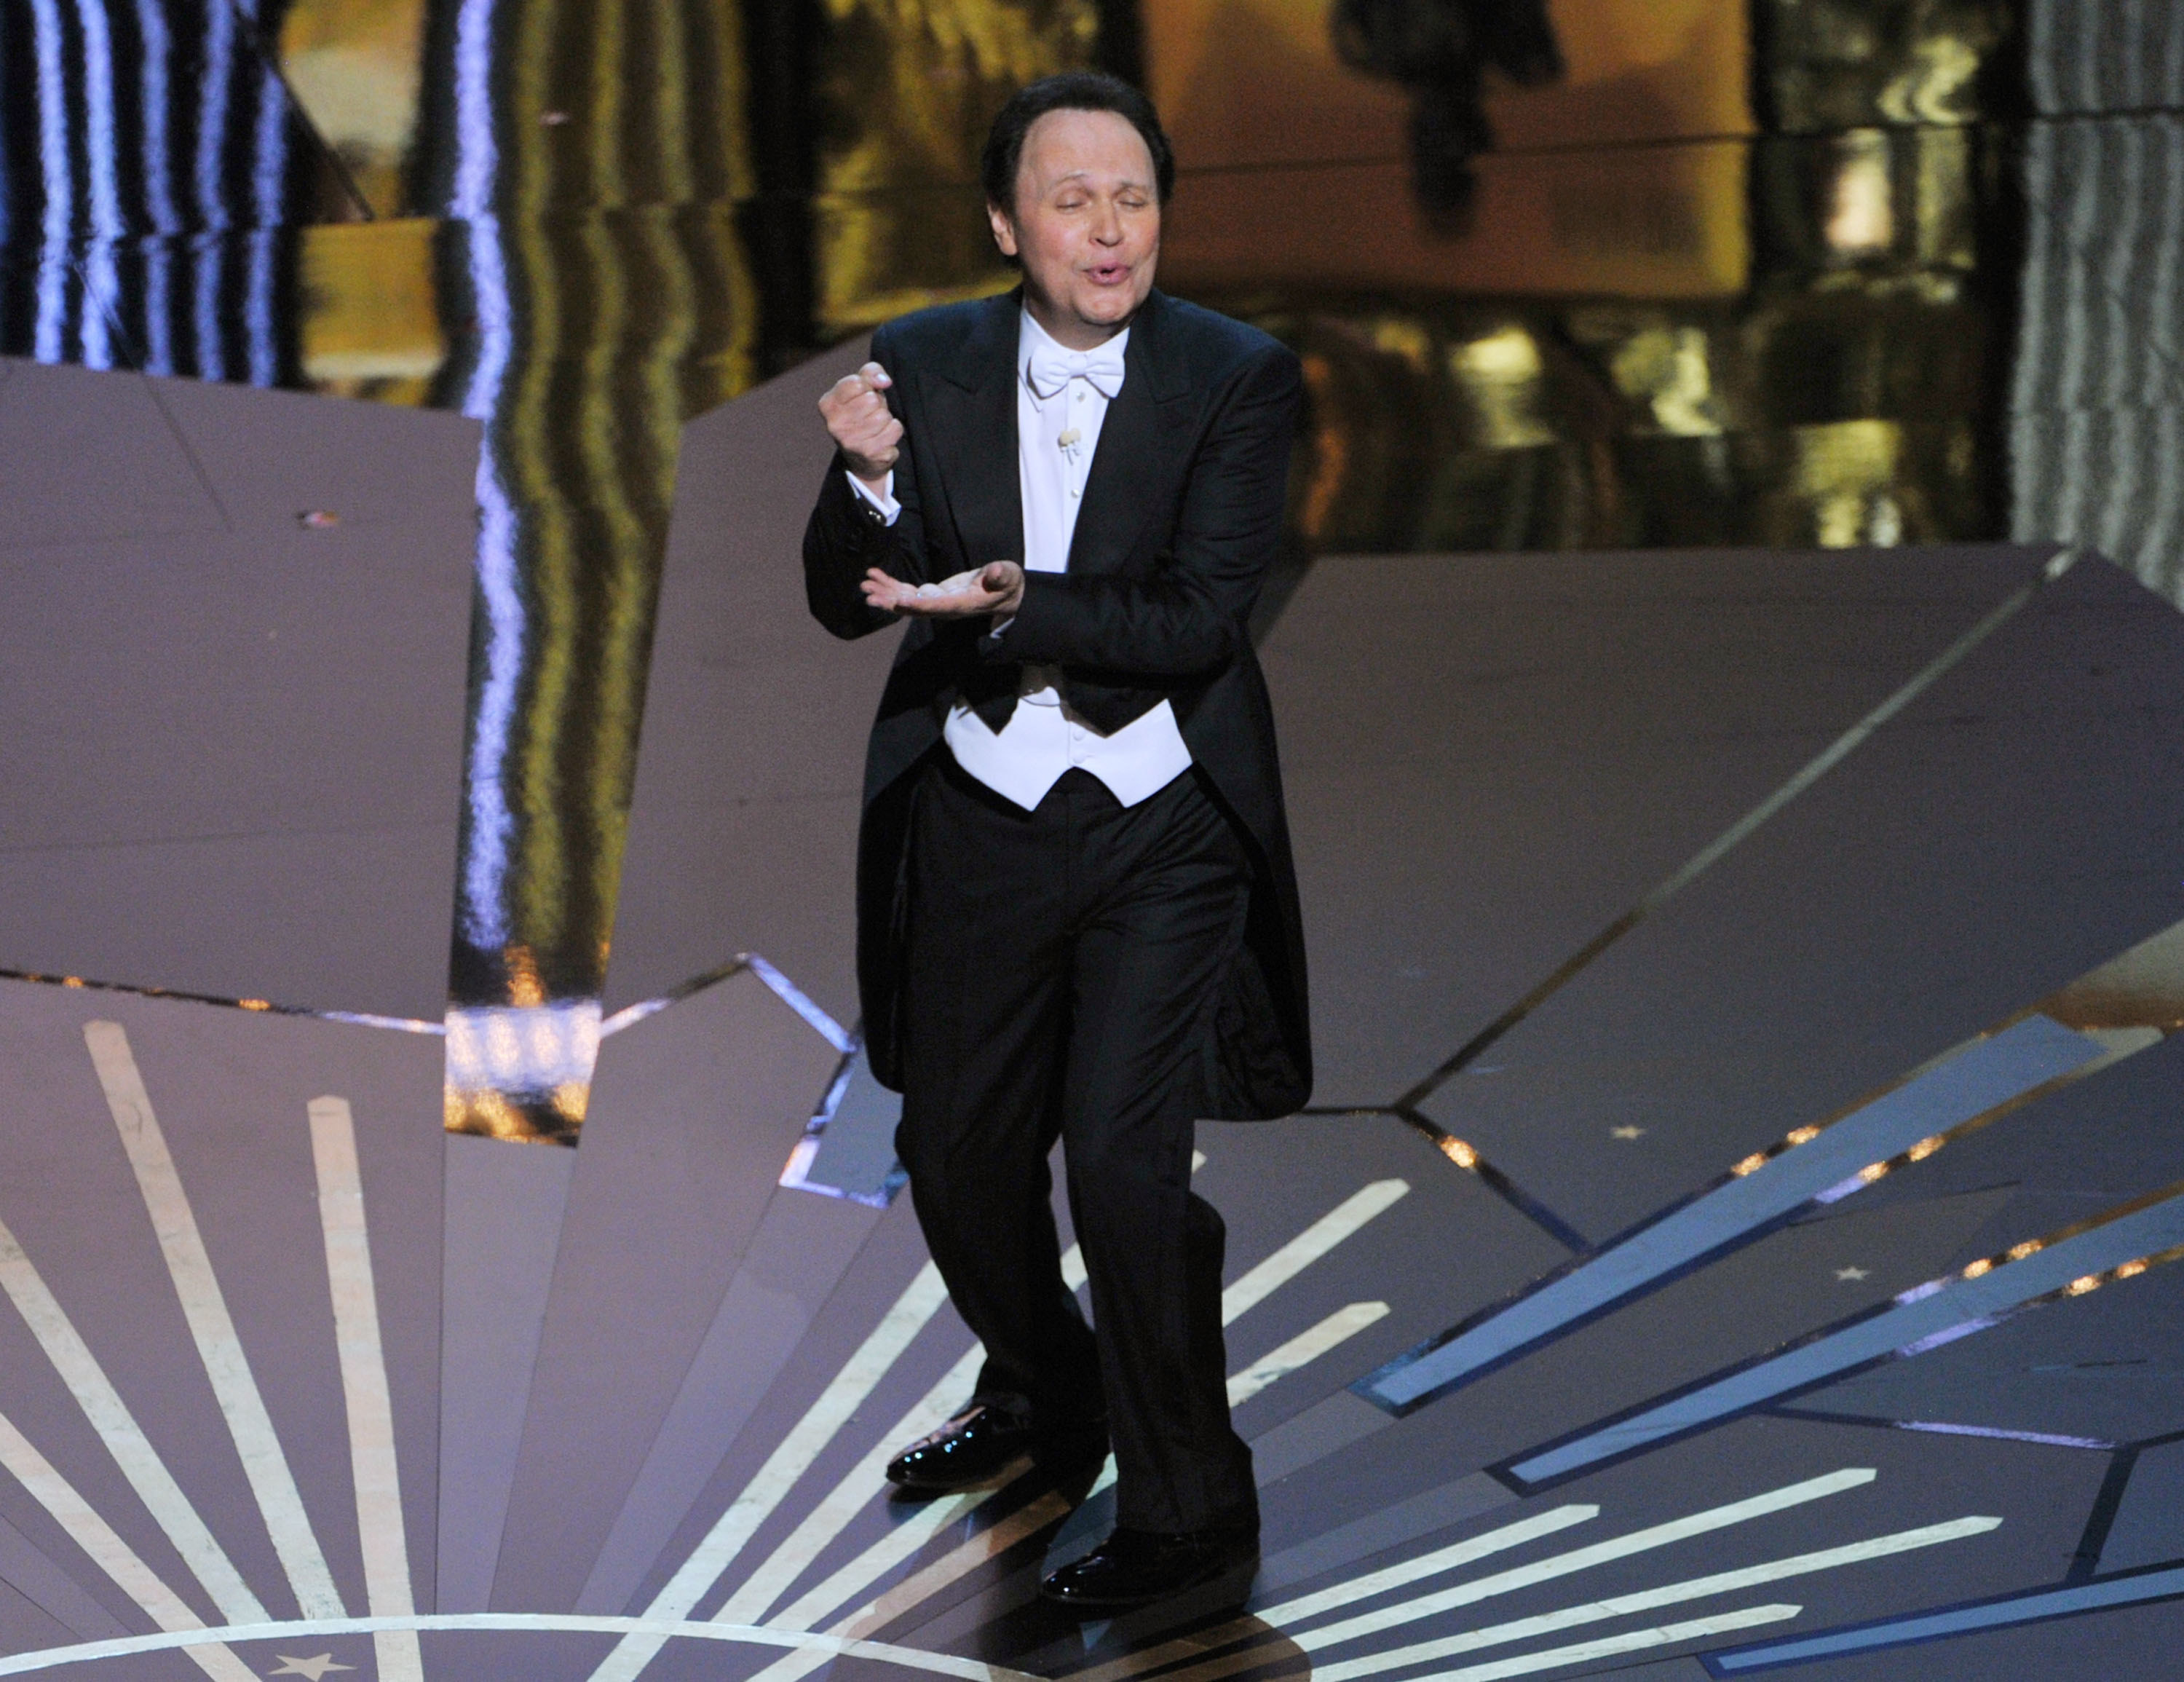 Billy Crystal performing onstage at the Oscars